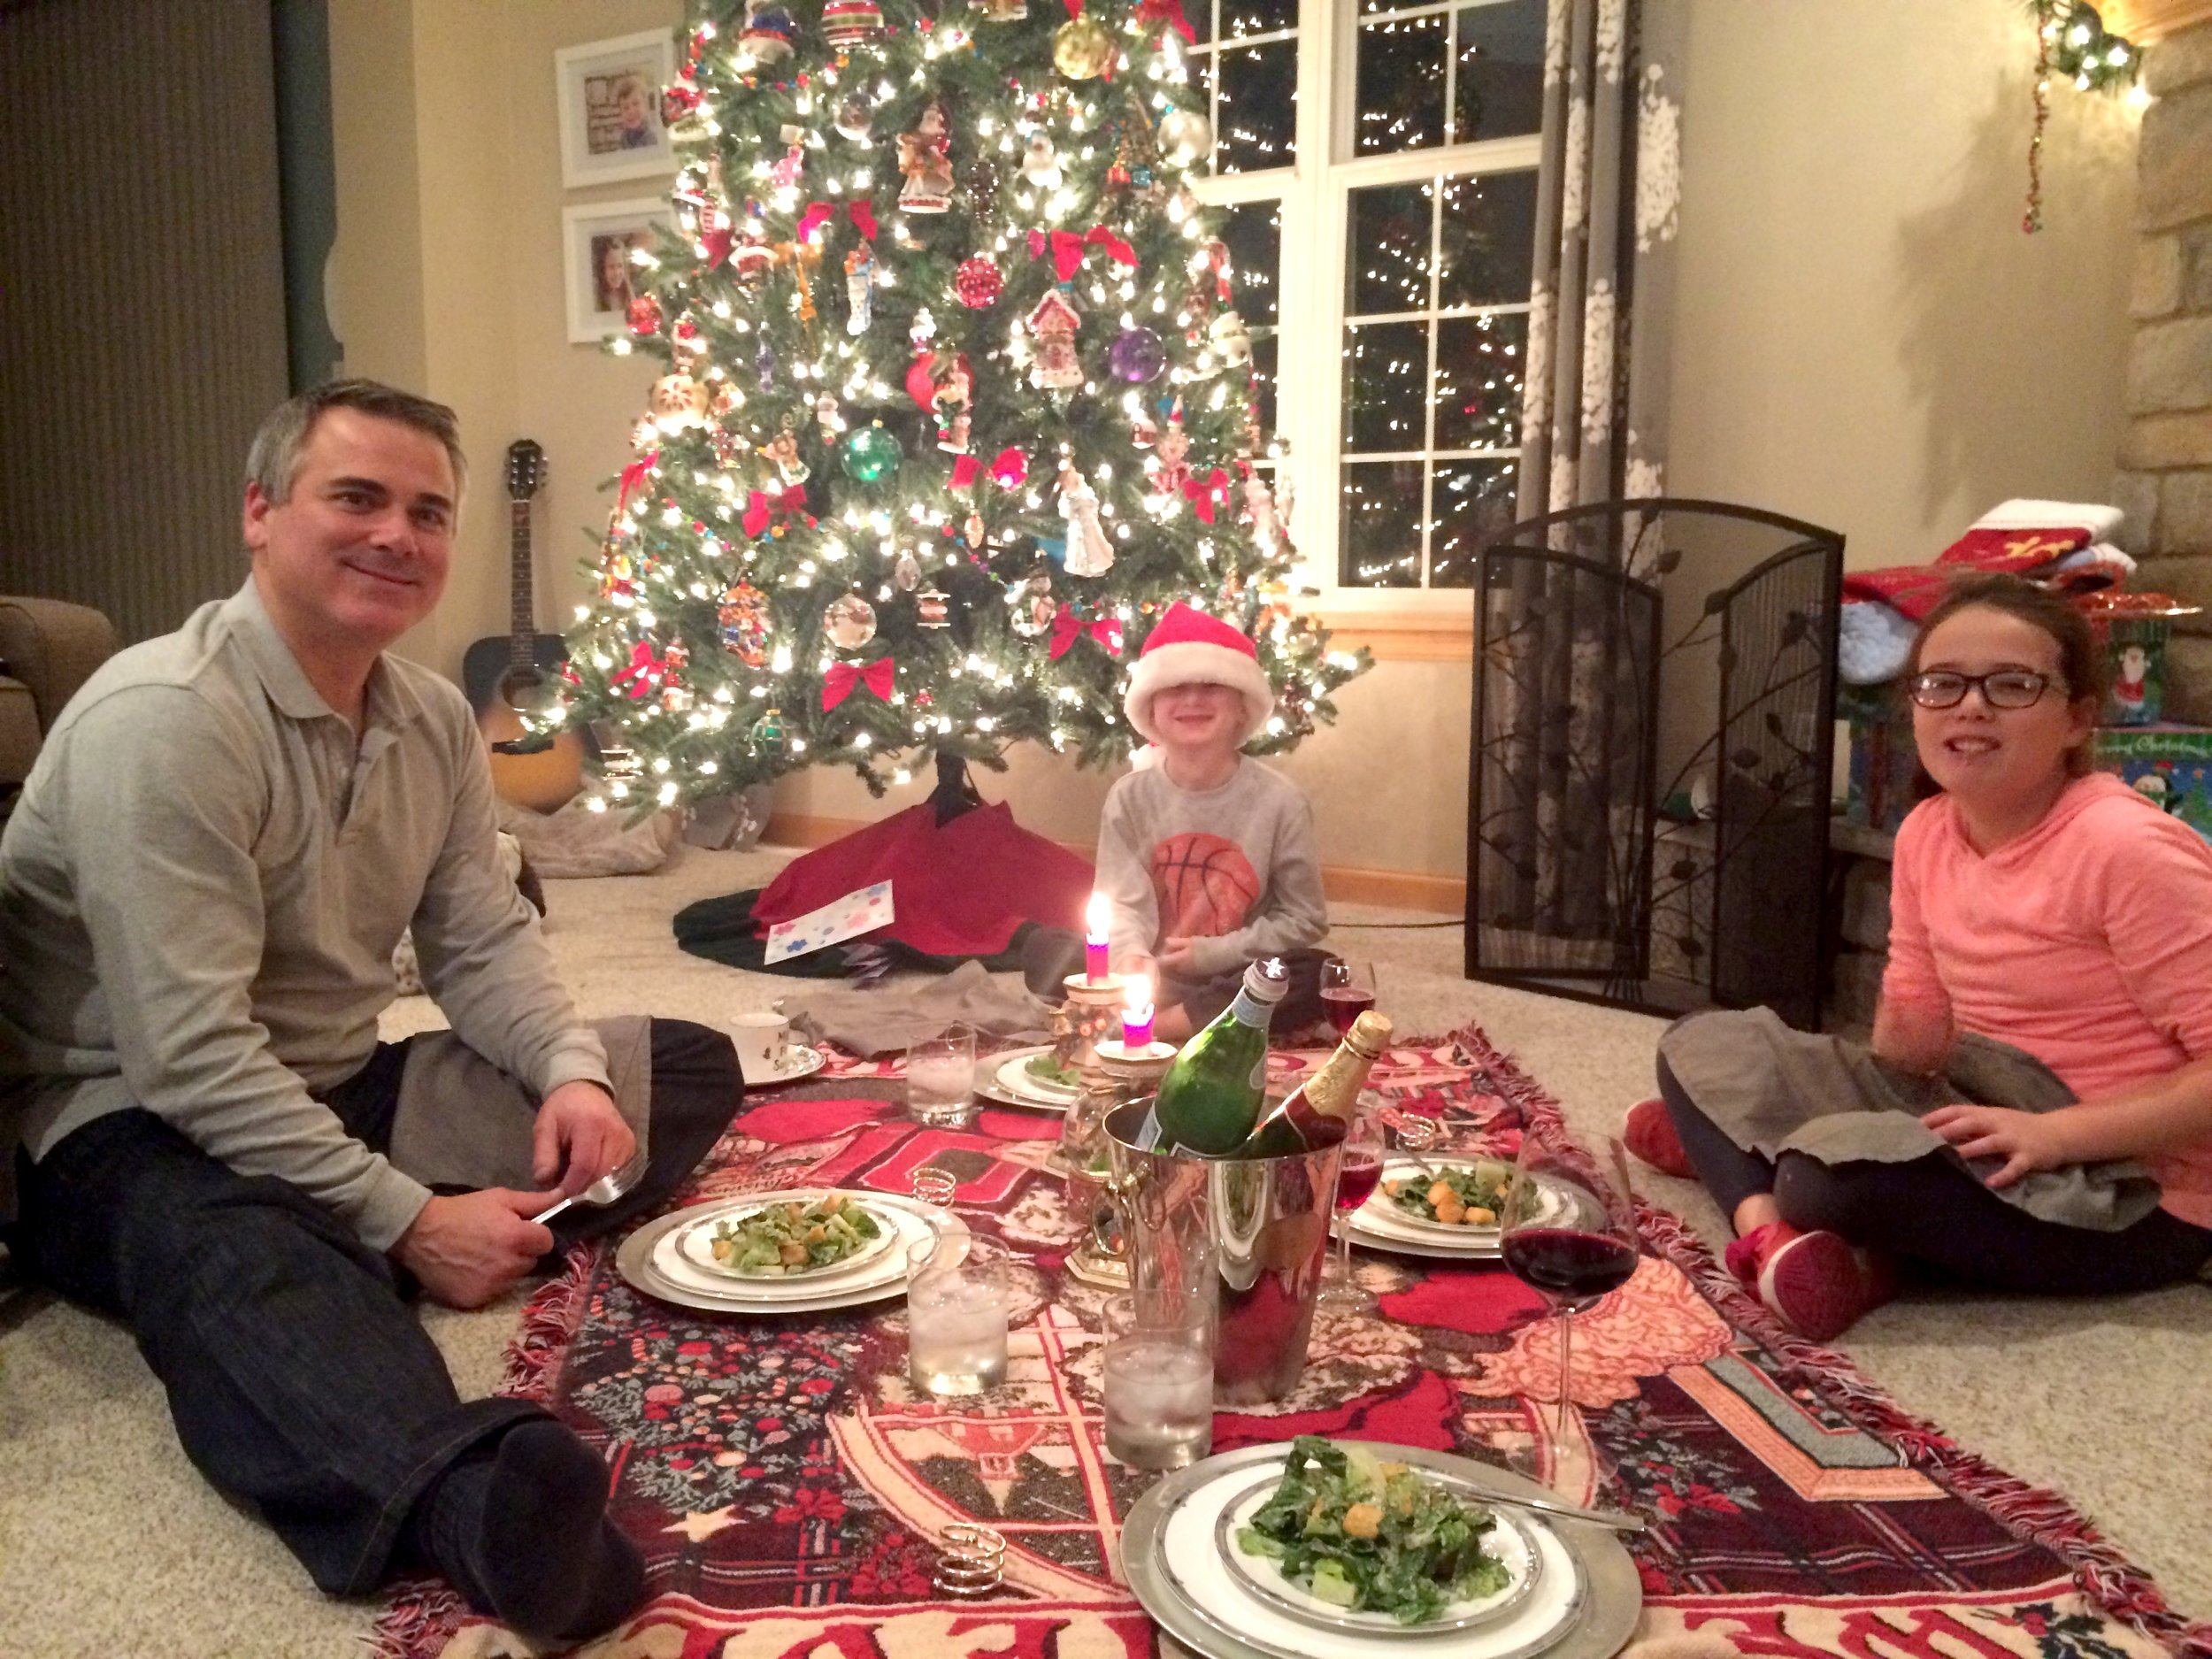 A Christmas picnic in front of the tree. On tonight's menu? Caesar salad and spaghetti. :)